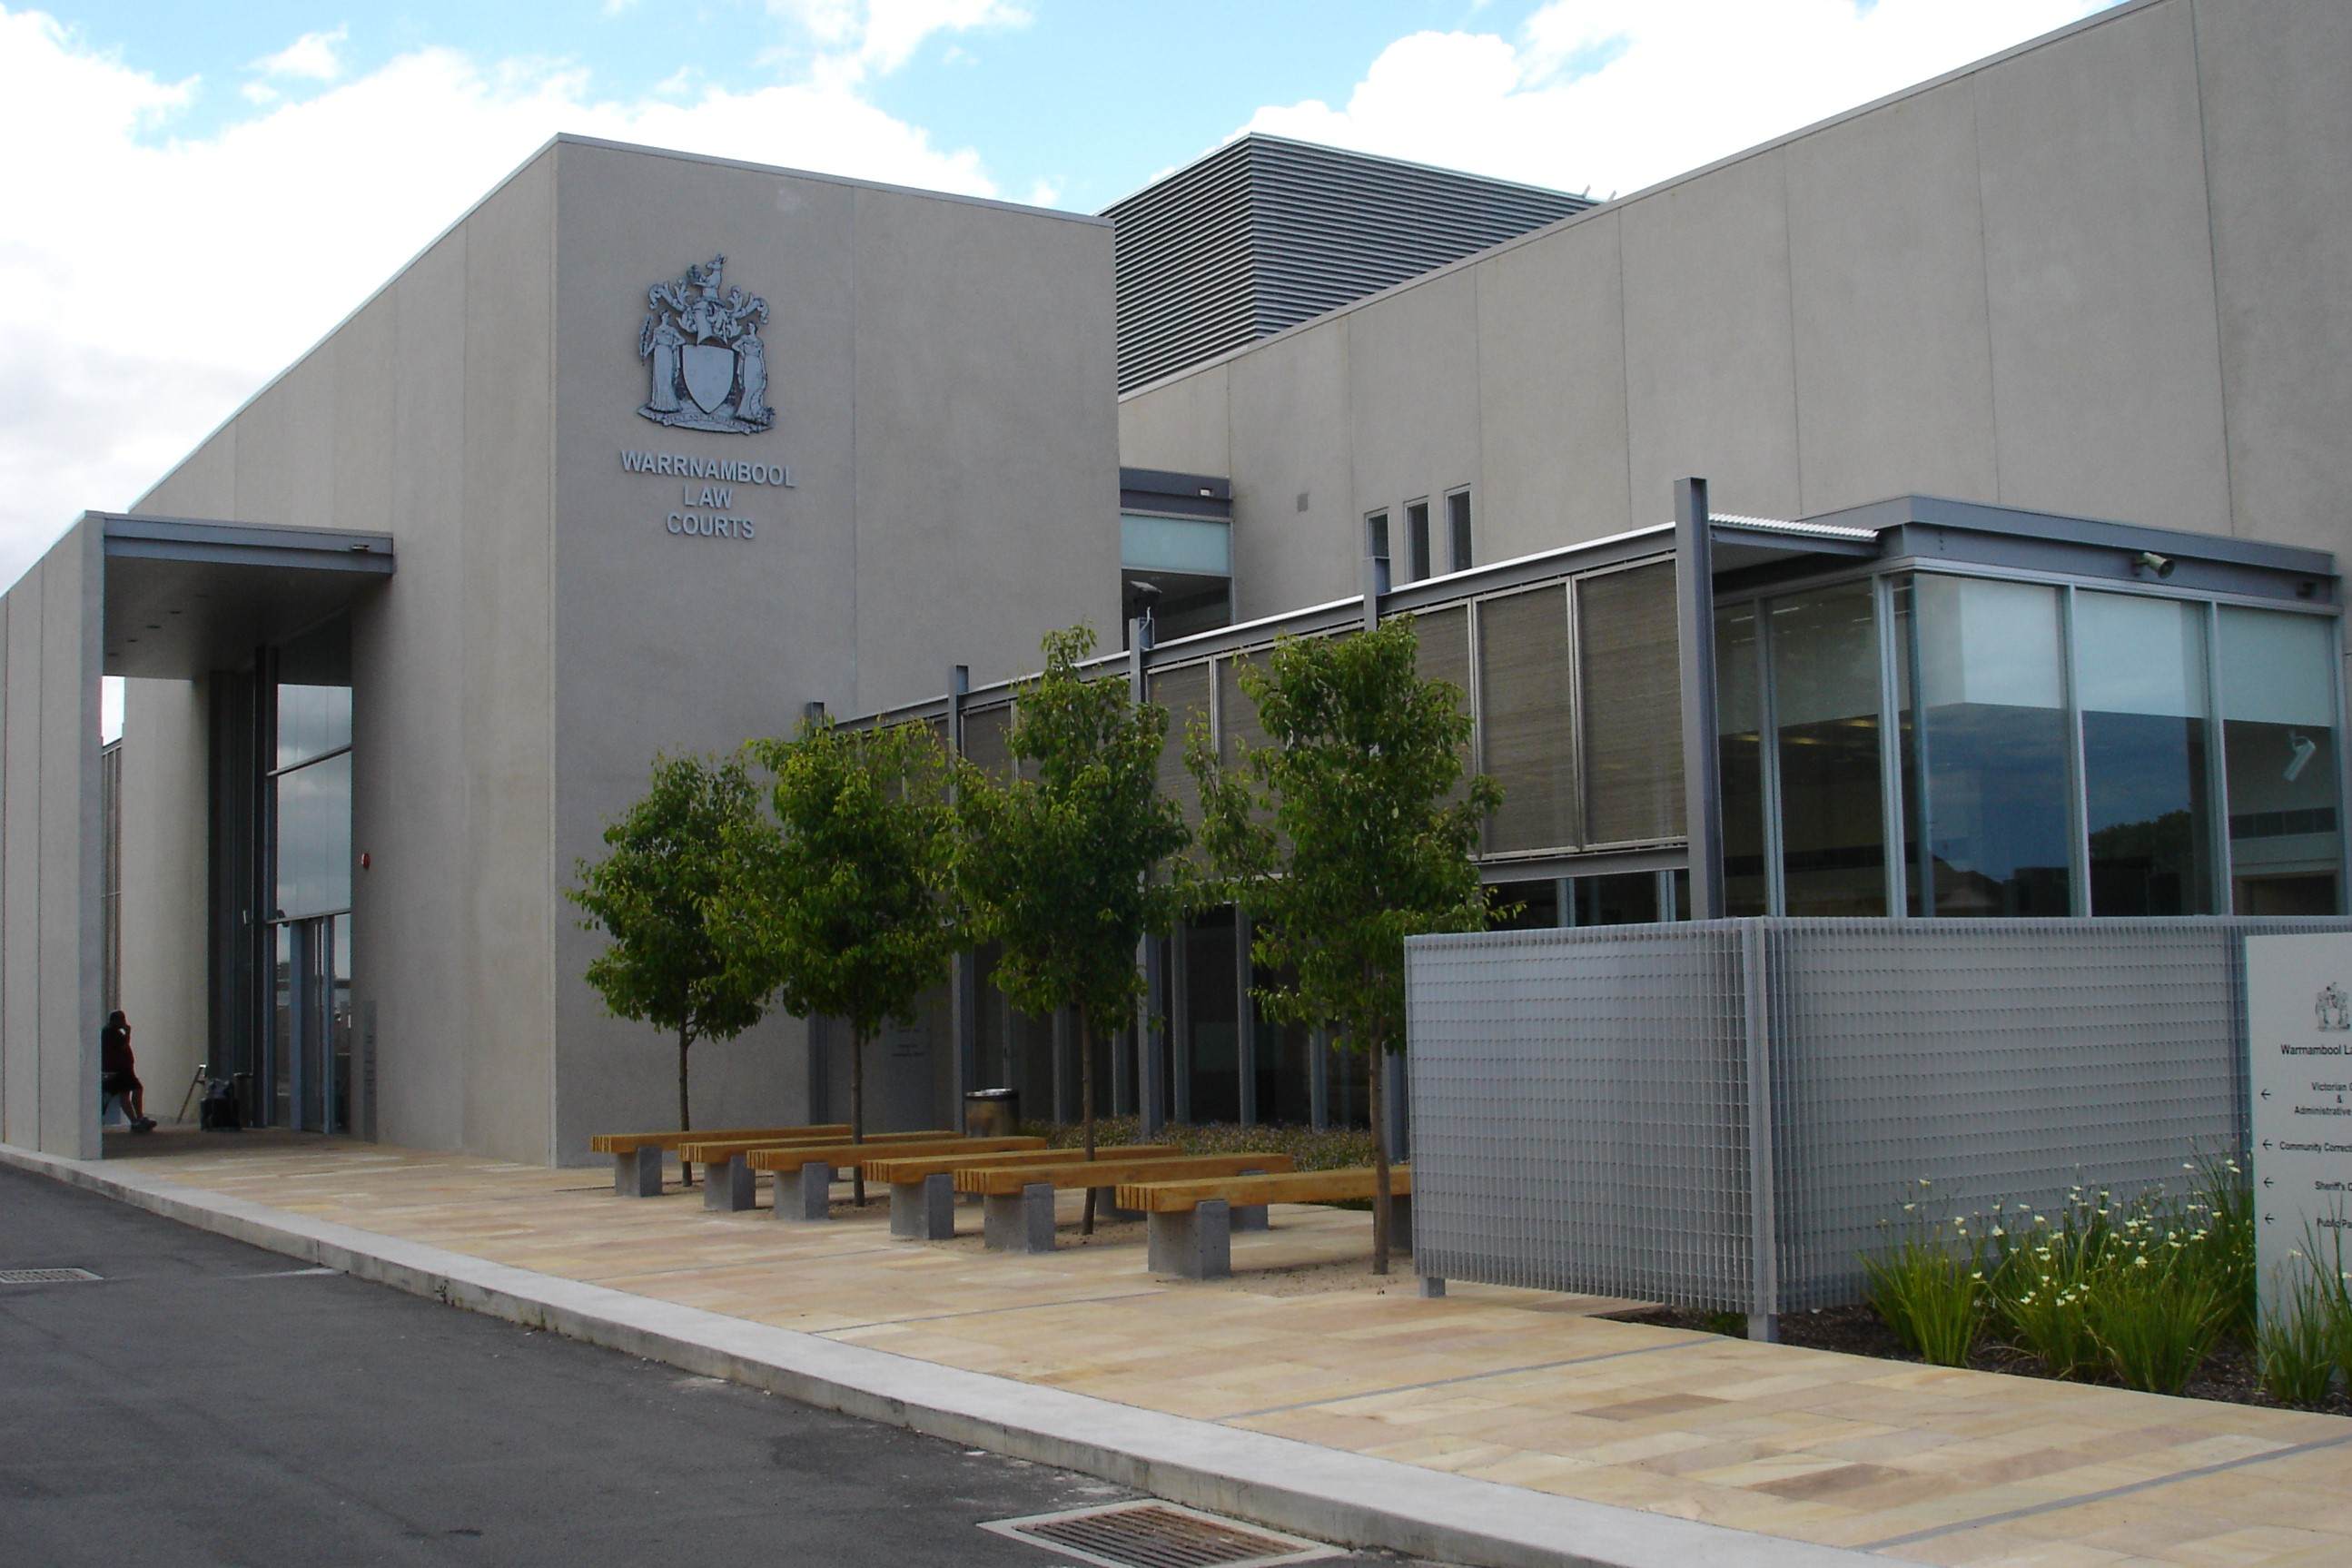 Outside view of Warrnambool Magistrates' Court